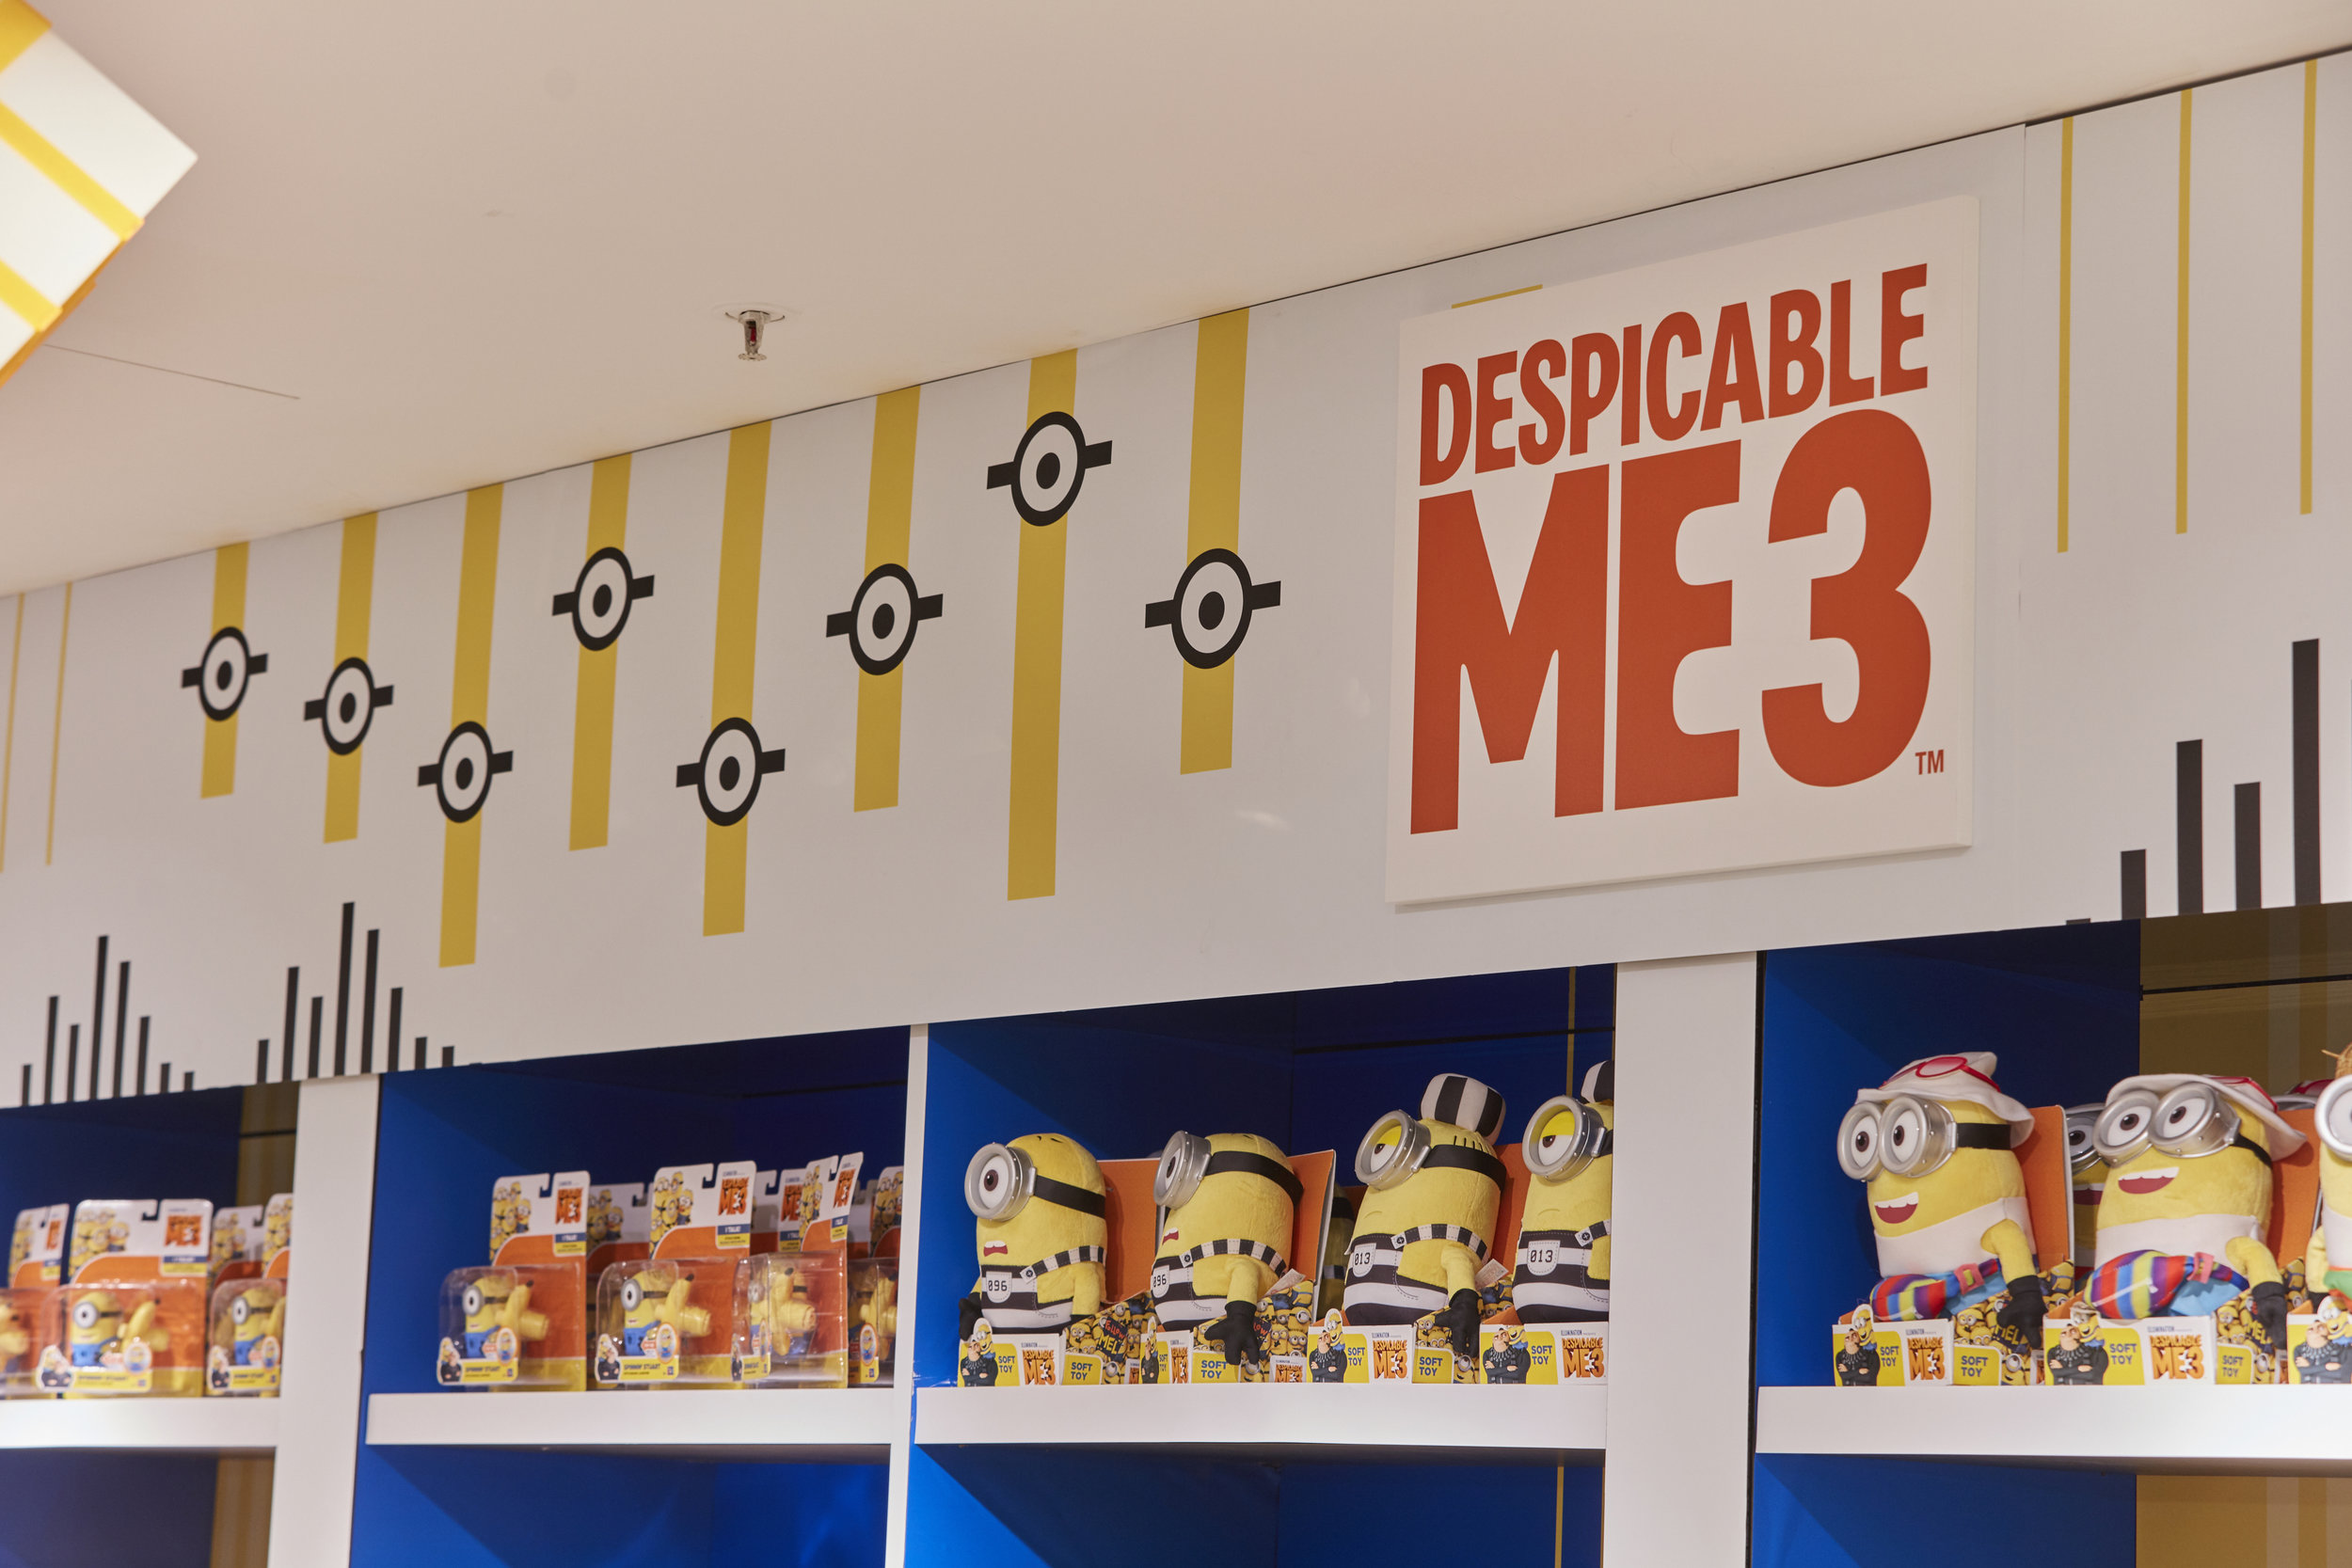 Propability, Oakwood, Despicable Me 3, Minions, Vinyl, Retail Design.jpg